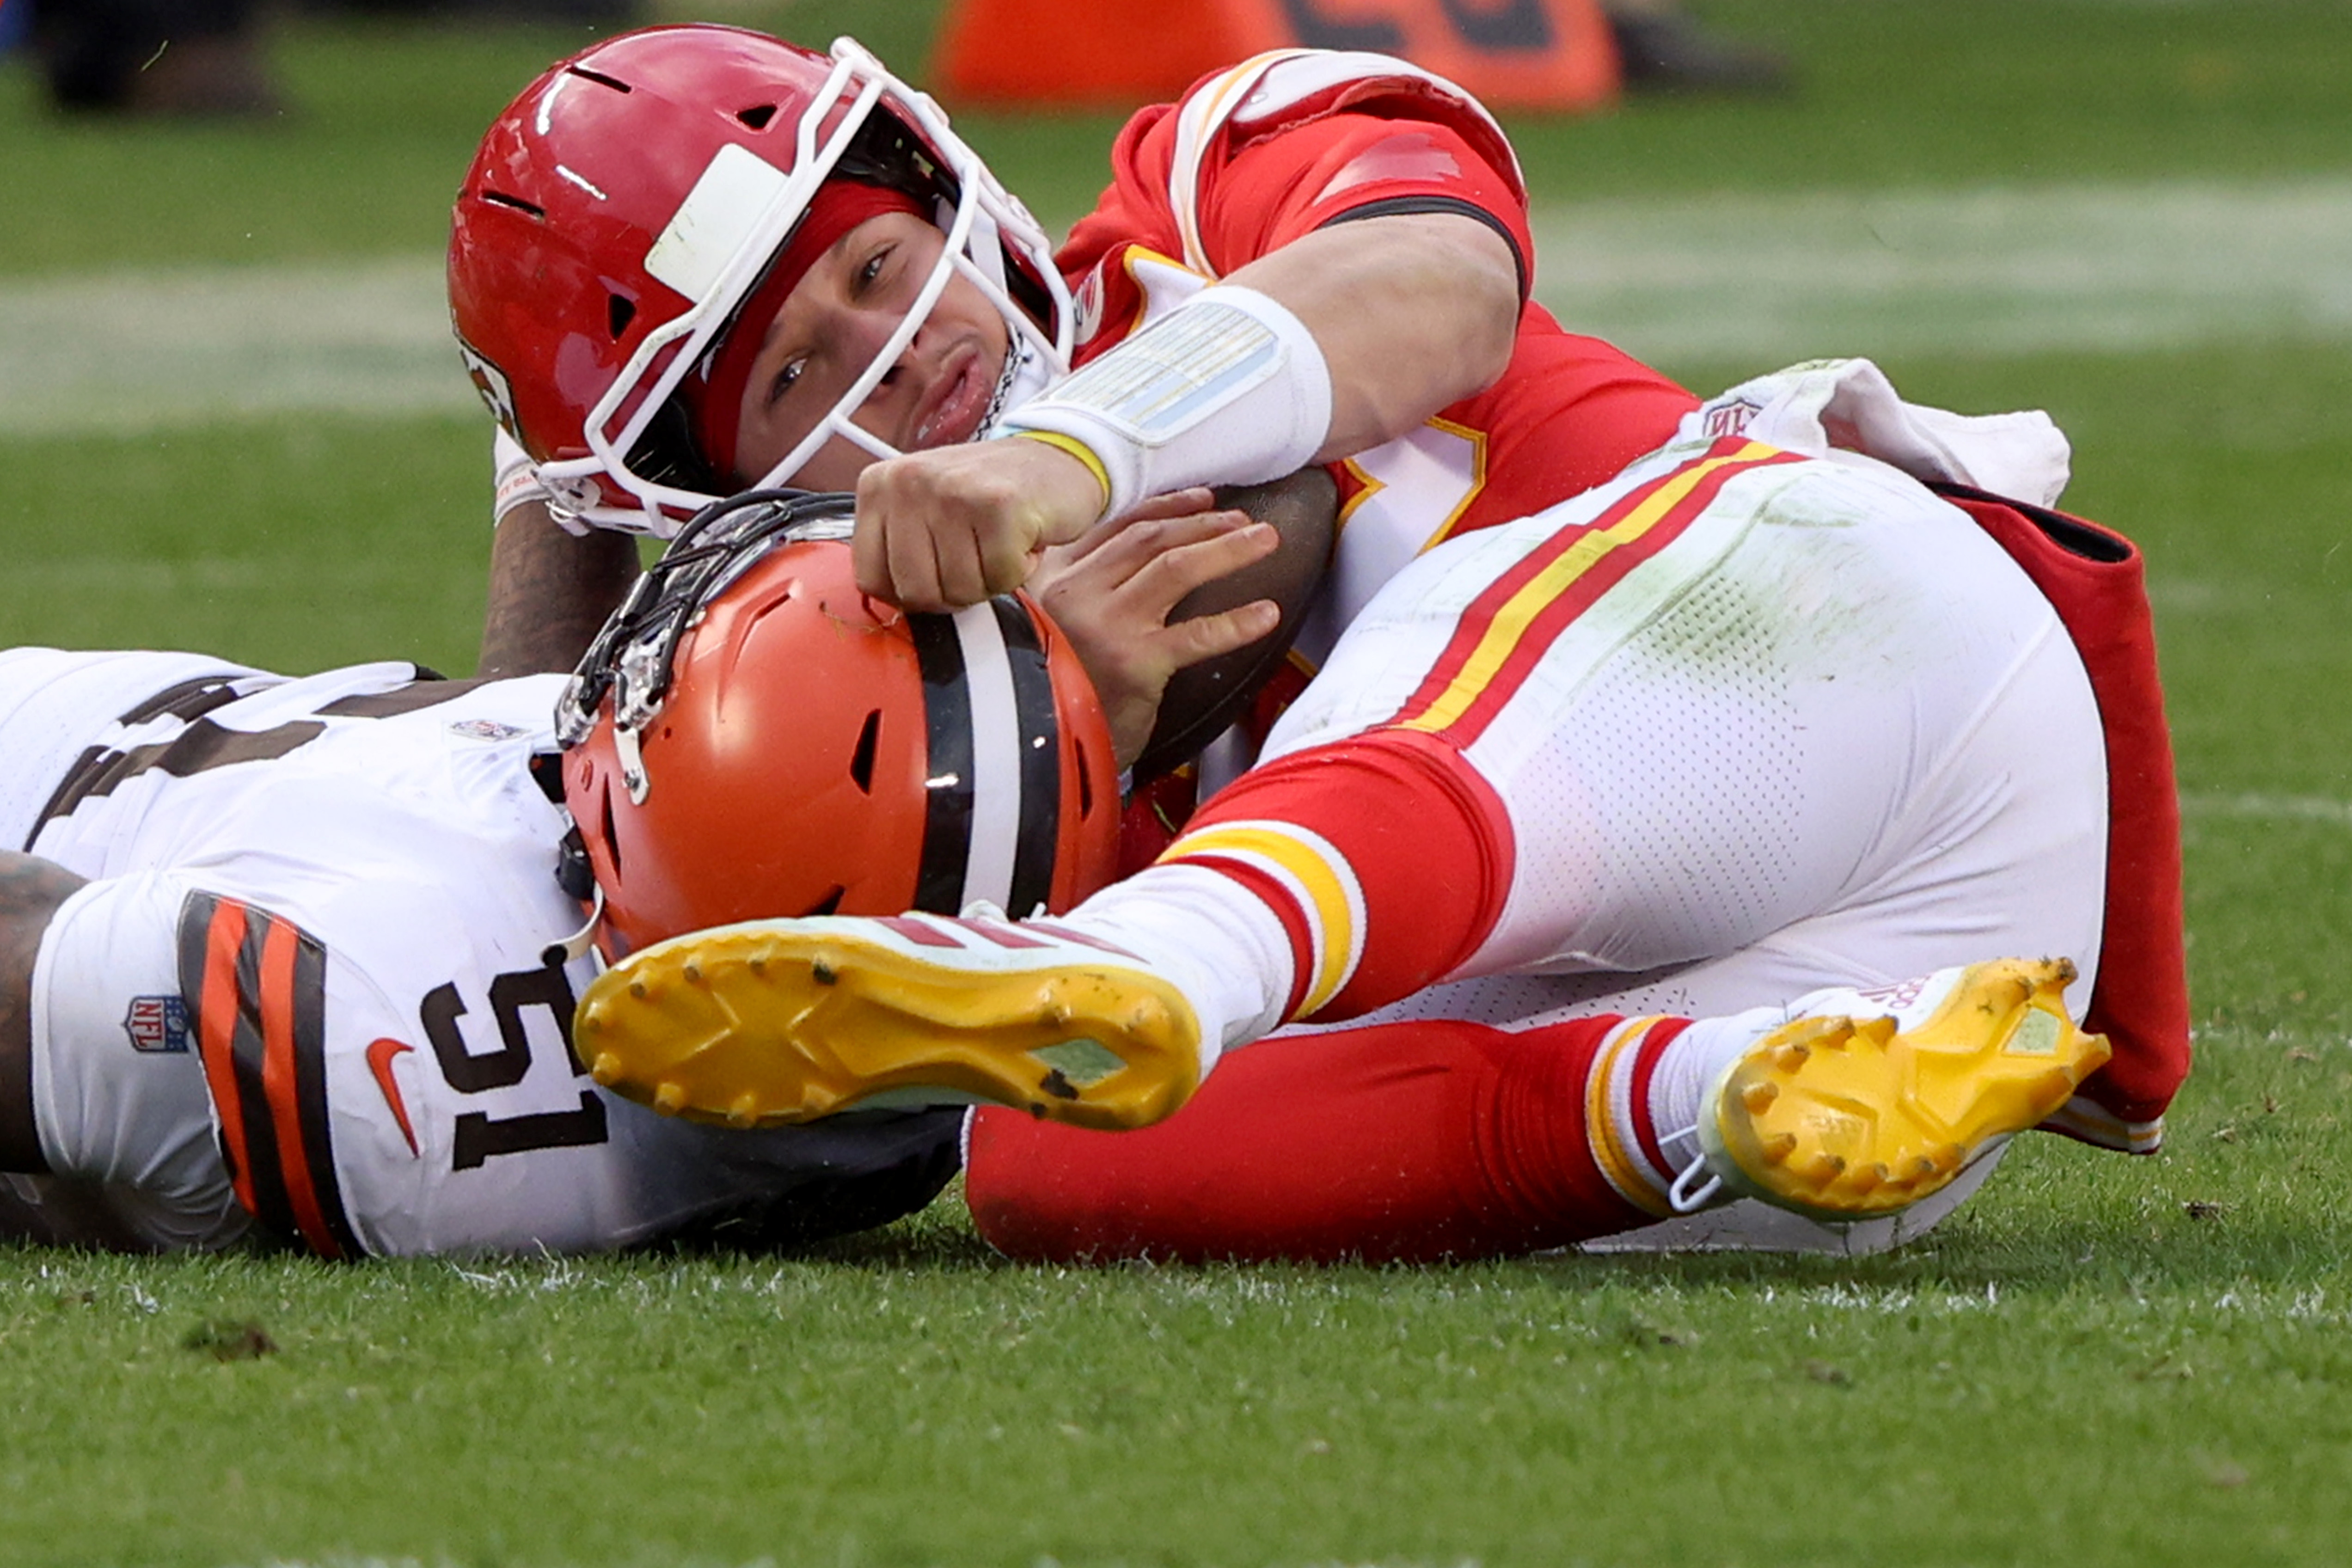 Browns LB Mack Wilson Responds To Patrick Mahomes' Mom After She Called Him 'Evil' Over Hit That Knocked Out Chiefs QB